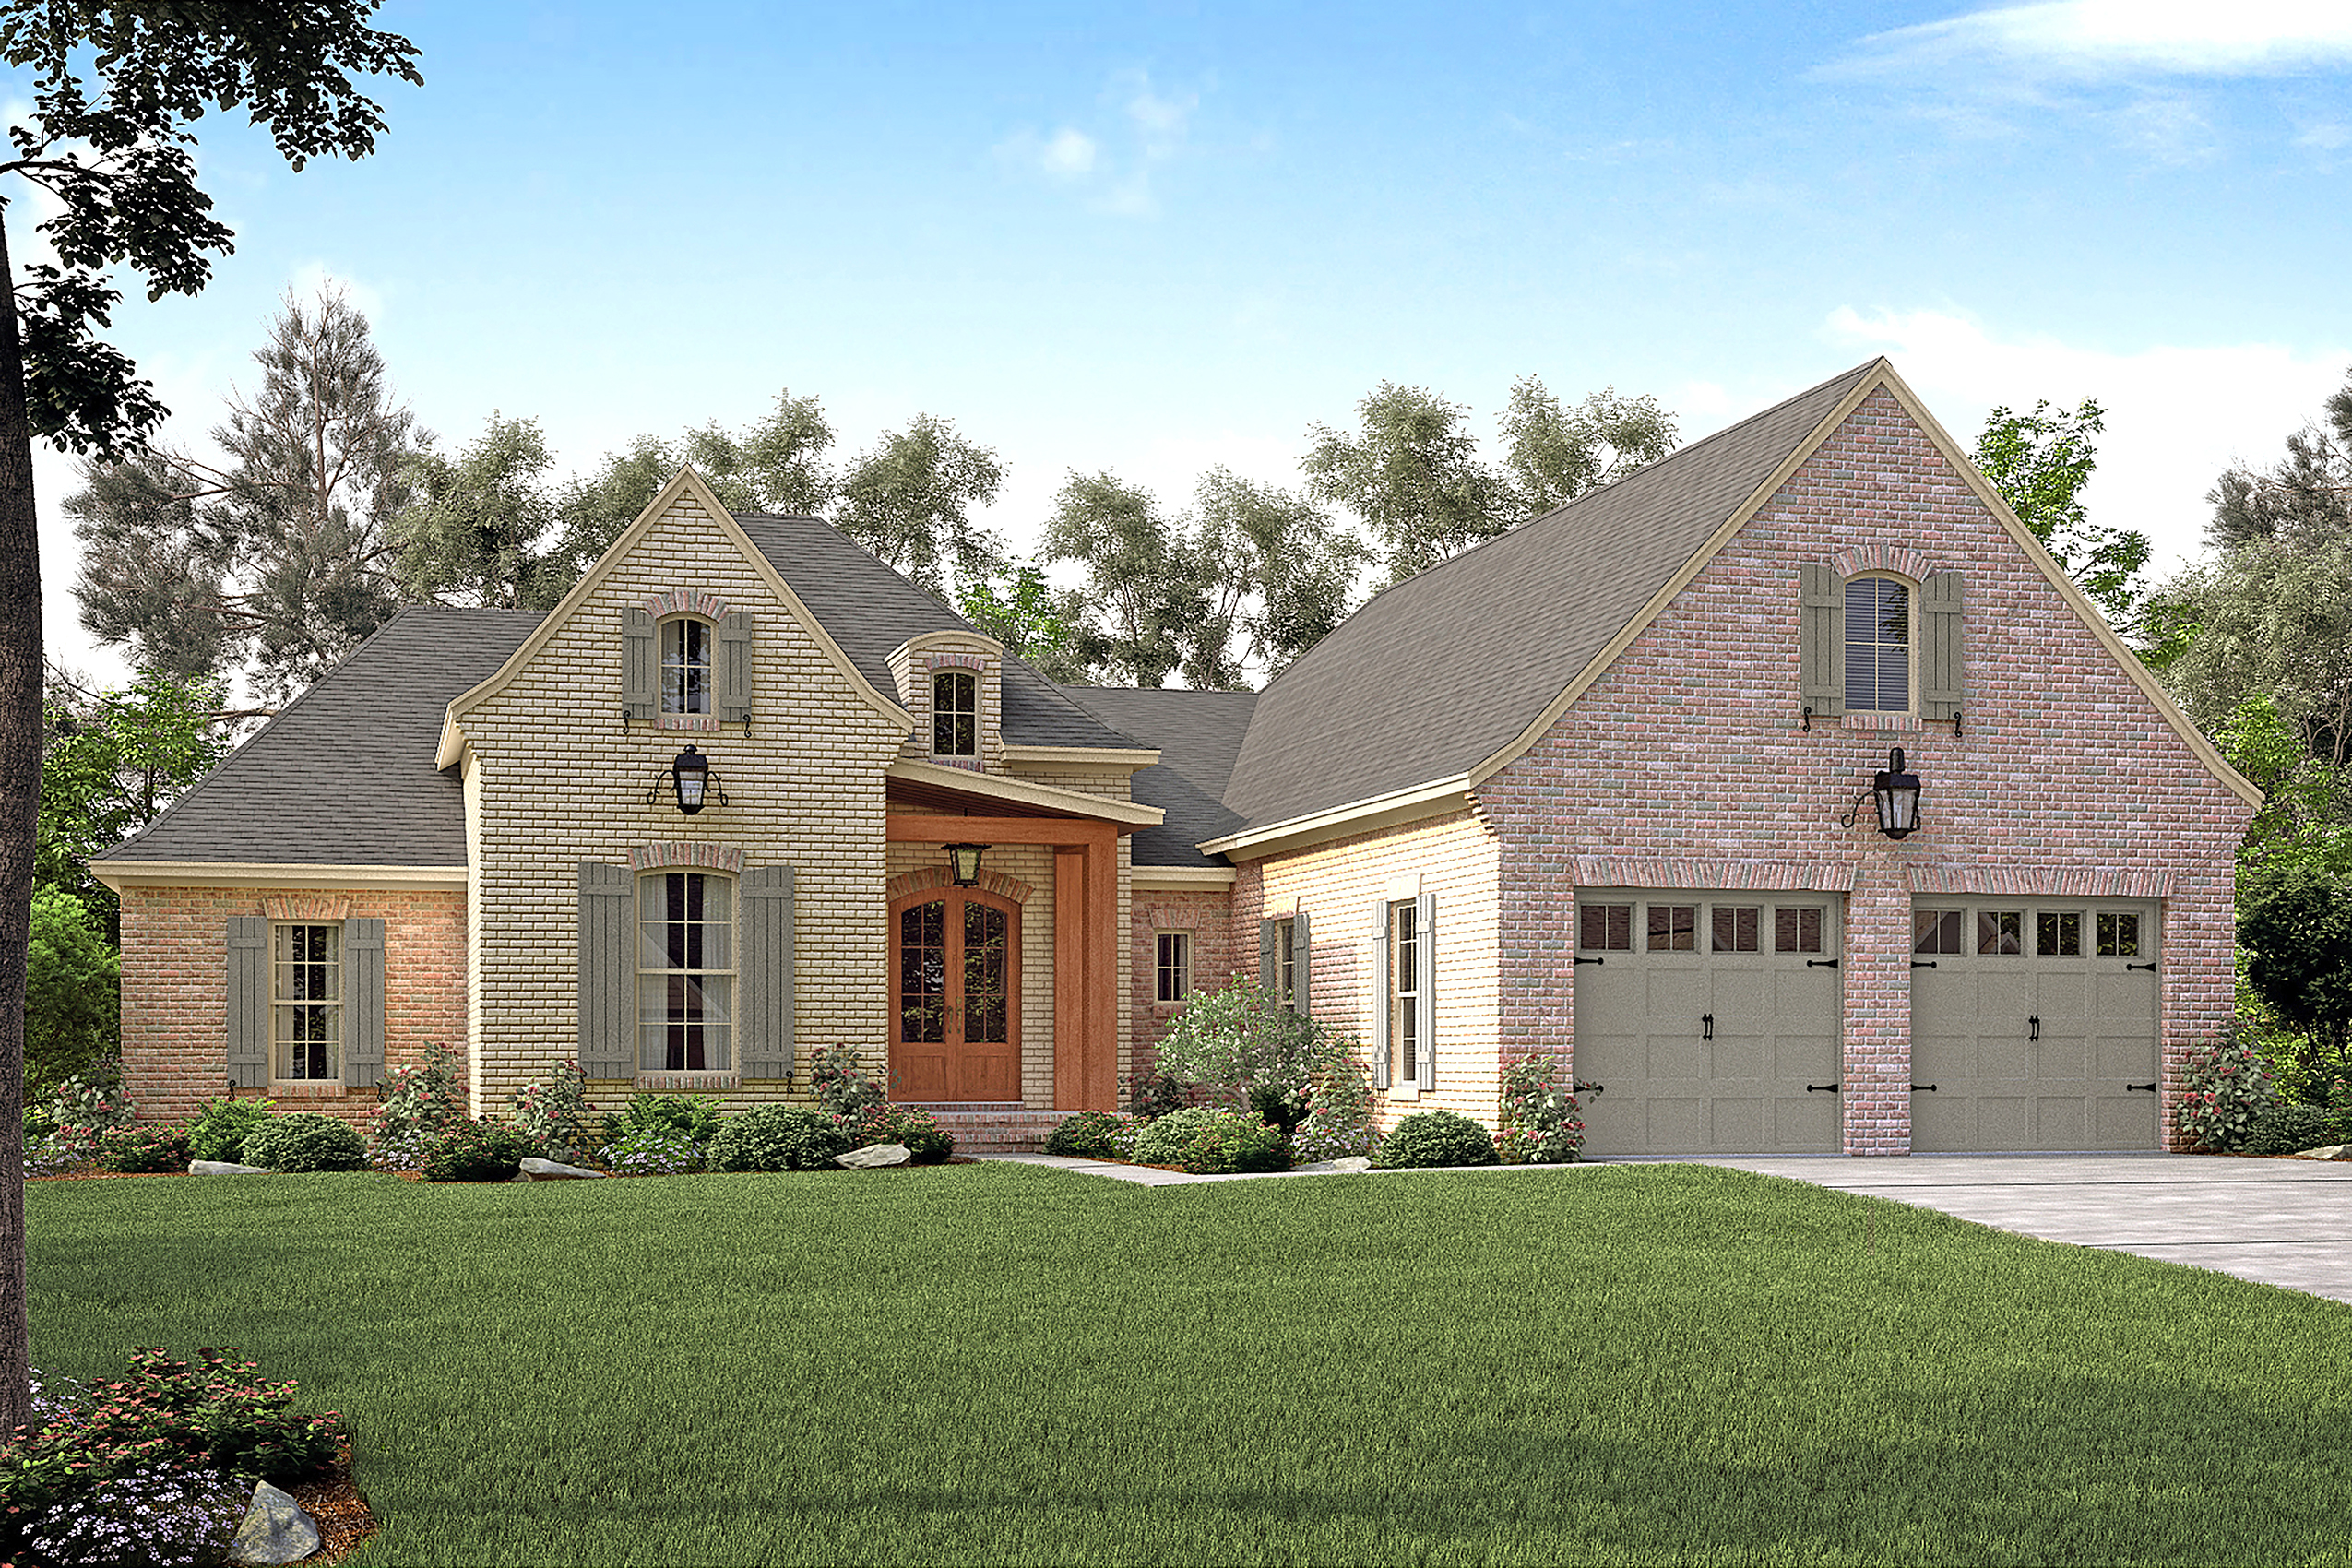 French house plan 142 1149 3 bedrm 2217 sq ft home plan for French home plans